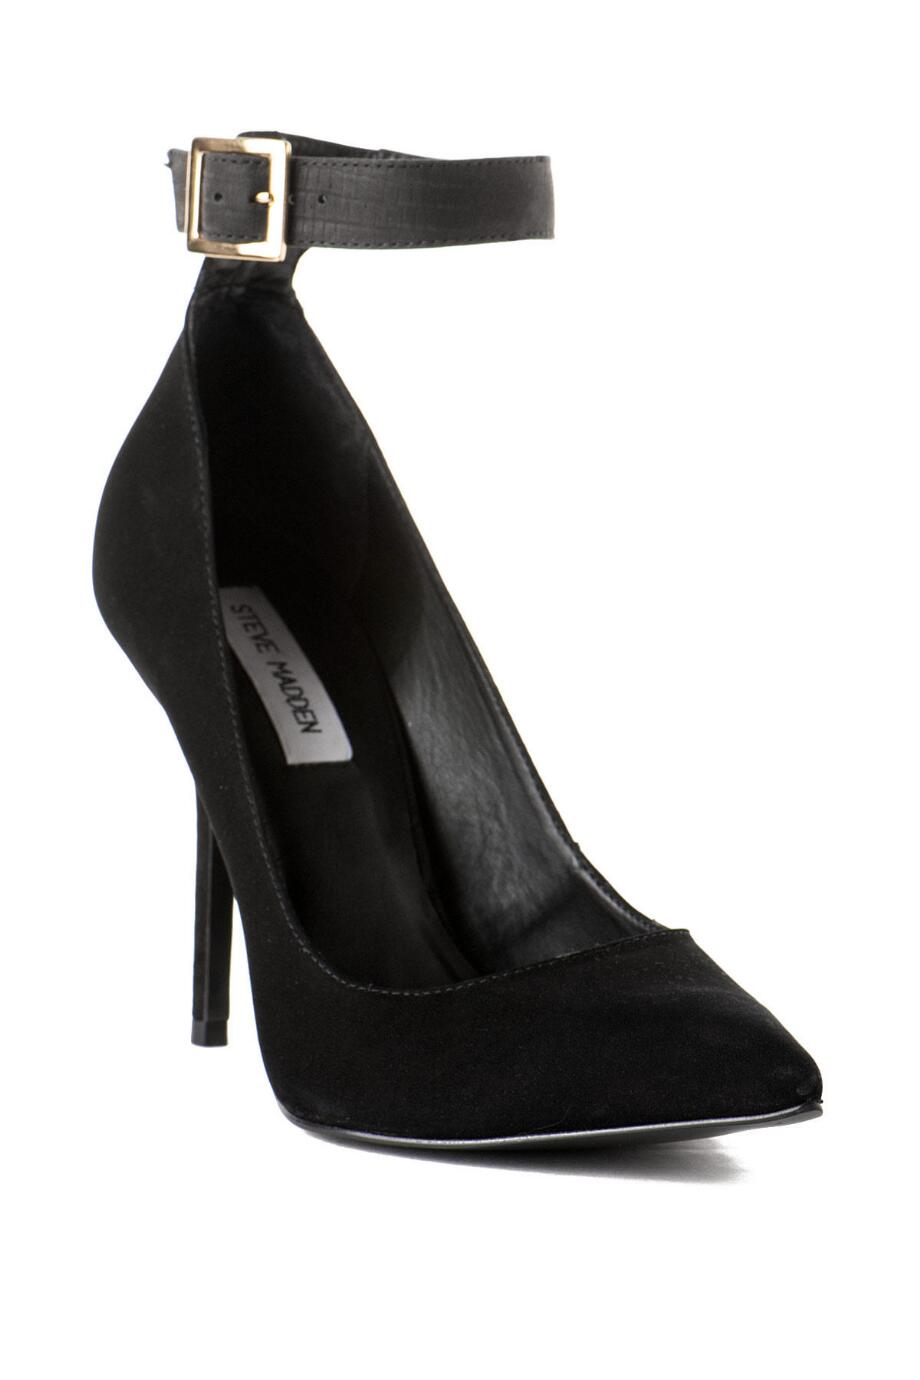 Steve Madden Shoes, Marryann Suede Pump